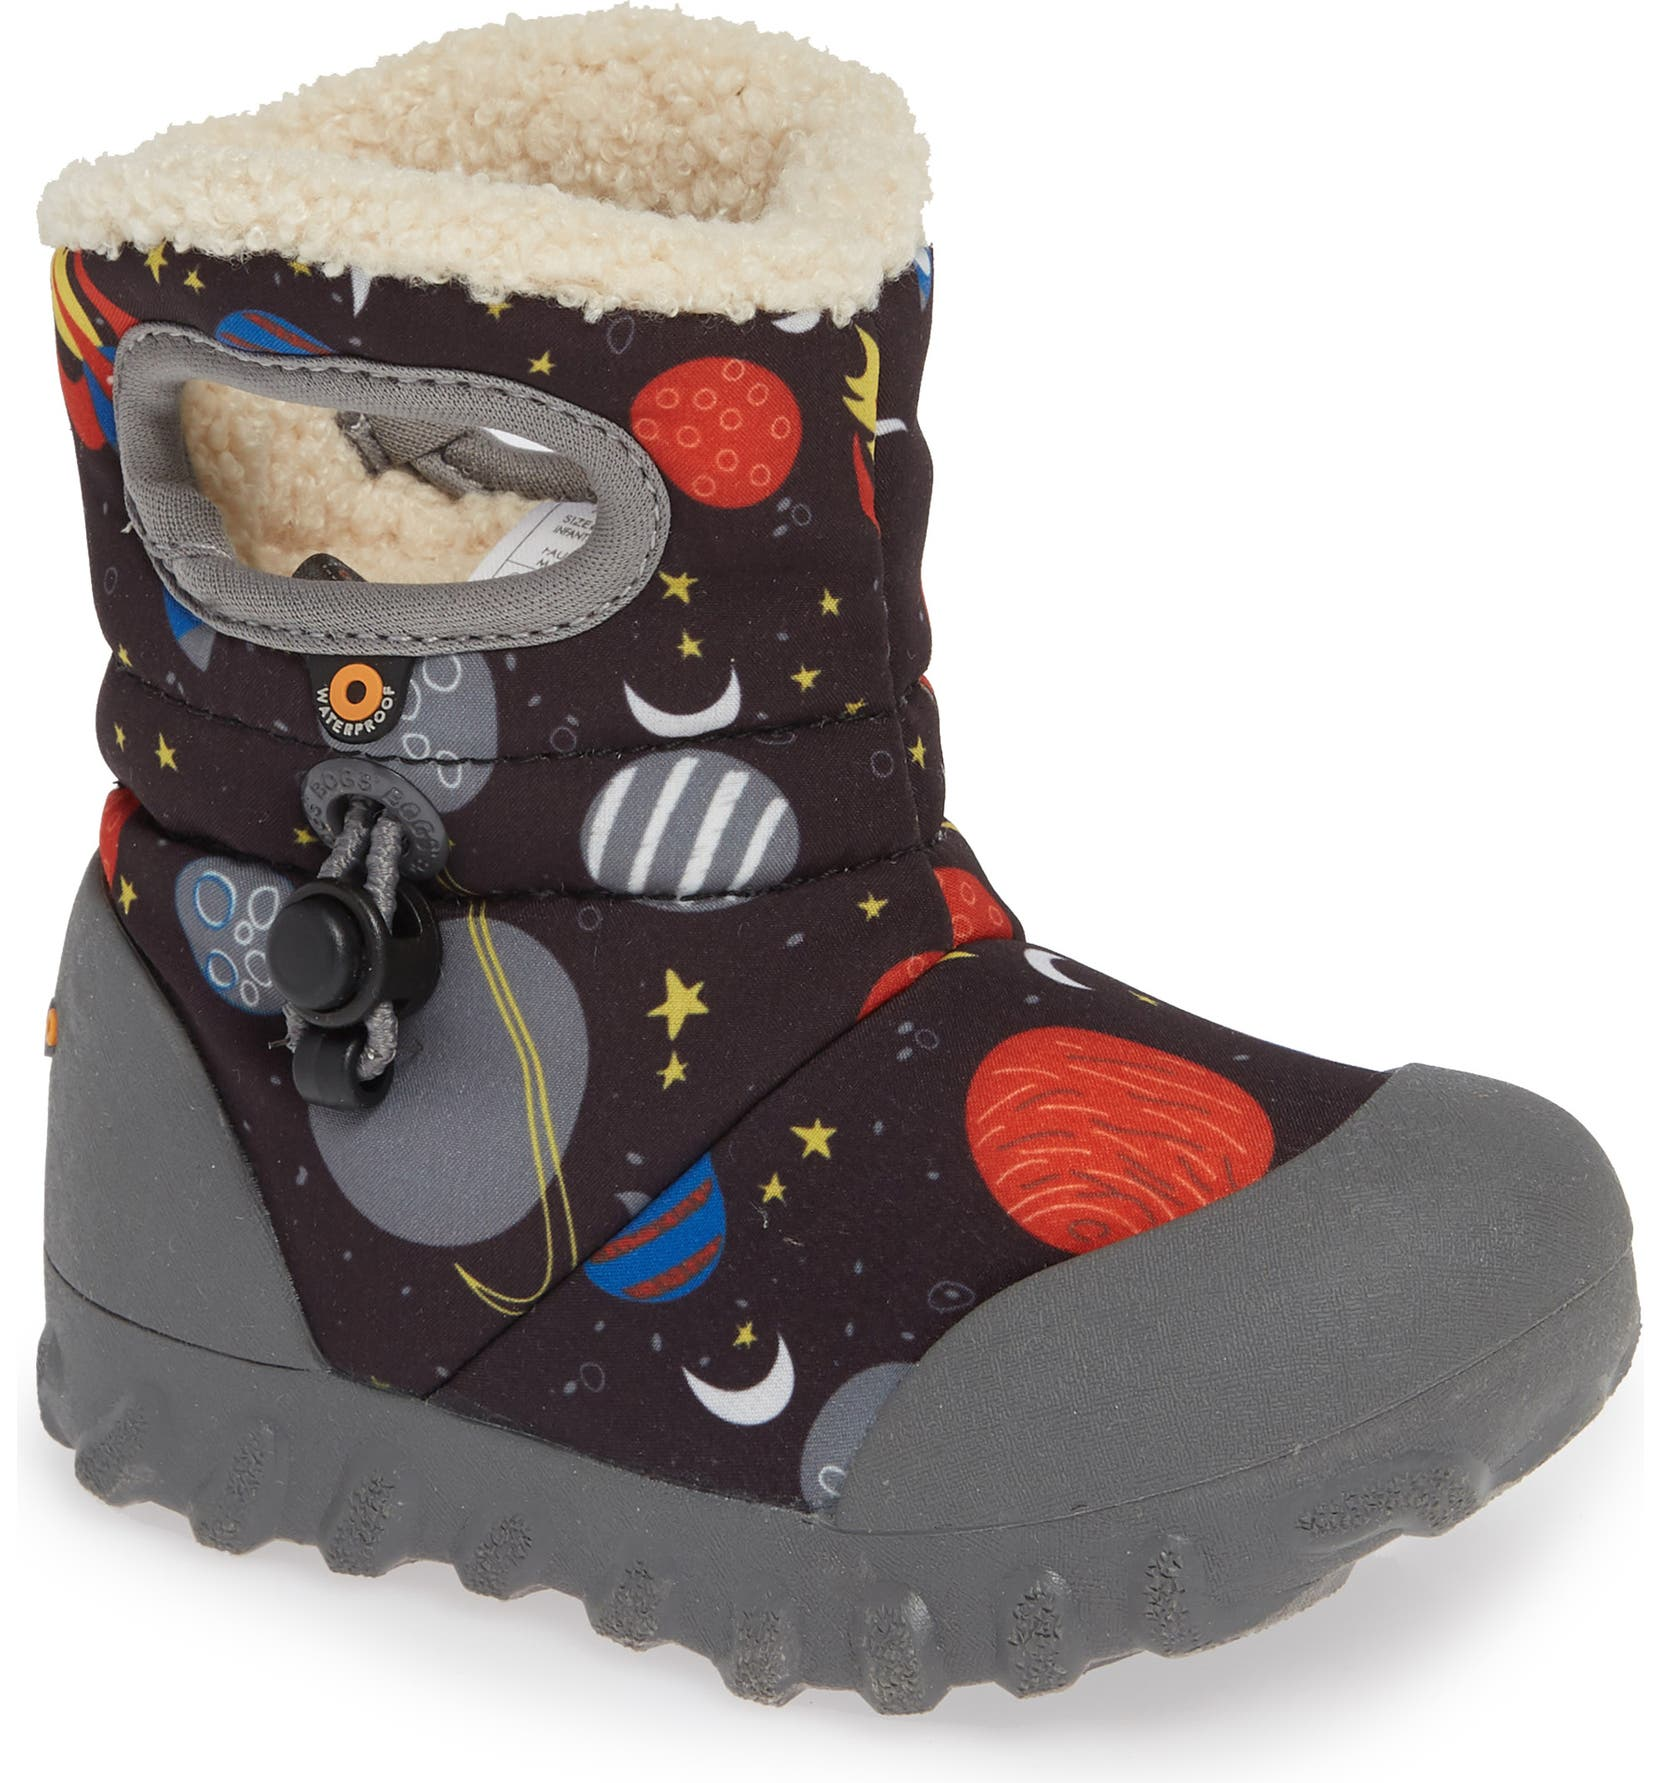 09ec402769 B-MOC Space Waterproof Insulated Faux Fur Boot